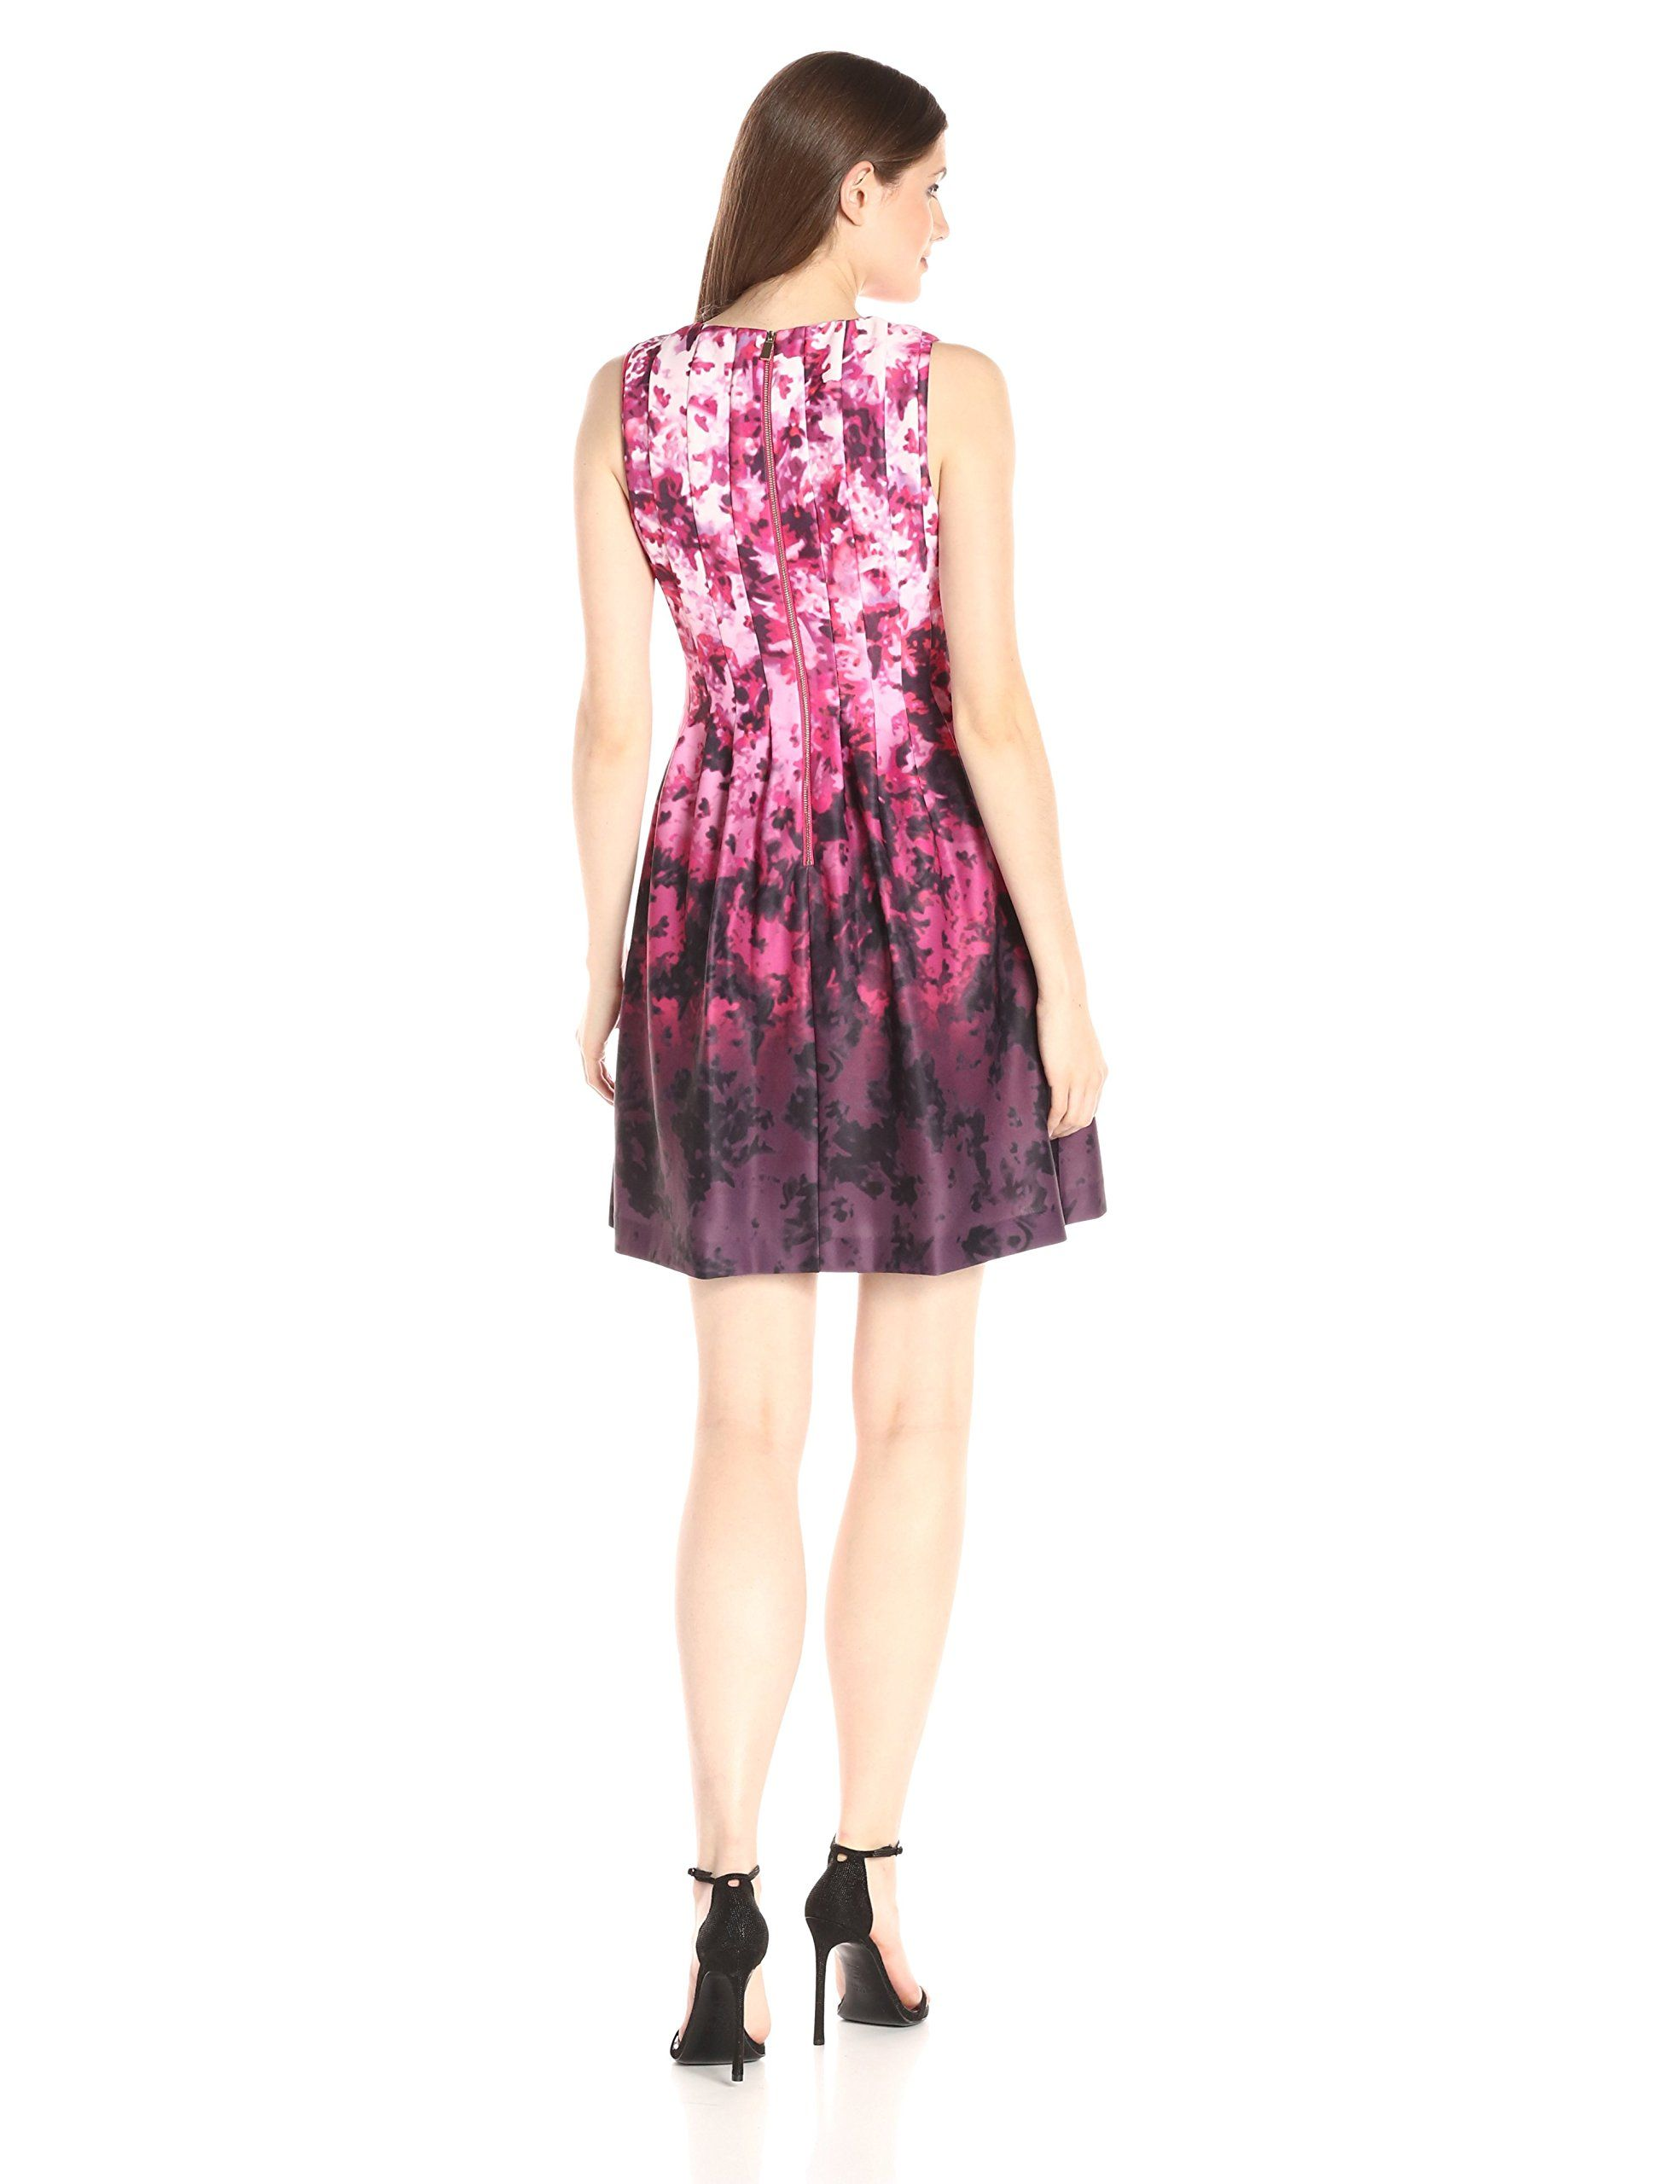 Vince Camuto Womens Fitandflare Dress Pink 4 For More Information Visit Image Link This Is An Affiliate Lin Dresses Fit And Flare Dress Pink Dress Women [ 2560 x 1969 Pixel ]